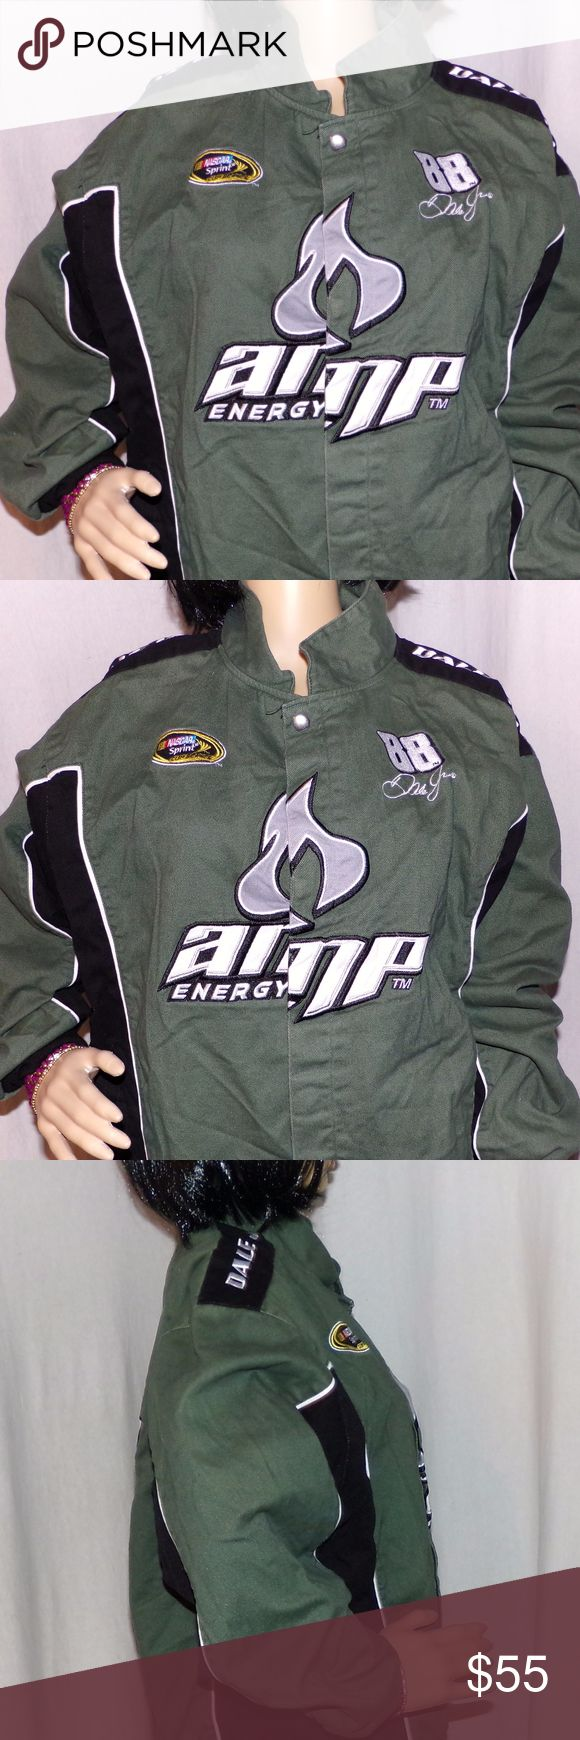 Dale Earnhardt Jr 88 Drivers Jacket AMP NASCAR Dale Earnhardt Jr 88 Drivers Jacket Embroidered Amp Energy Vintage Jacket size L LOW & FAST Shipping. This is from the early 2000's and it is from a collection. It is made by Winner's Circle and is in excellent vintage condition! This is a green and black and Embroidered on the front and back. NASCAR collectible and made of 100% Cotton on the outside and 100 % Polyester on the inside and has metal snaps. This was very expensive! Remember 2…